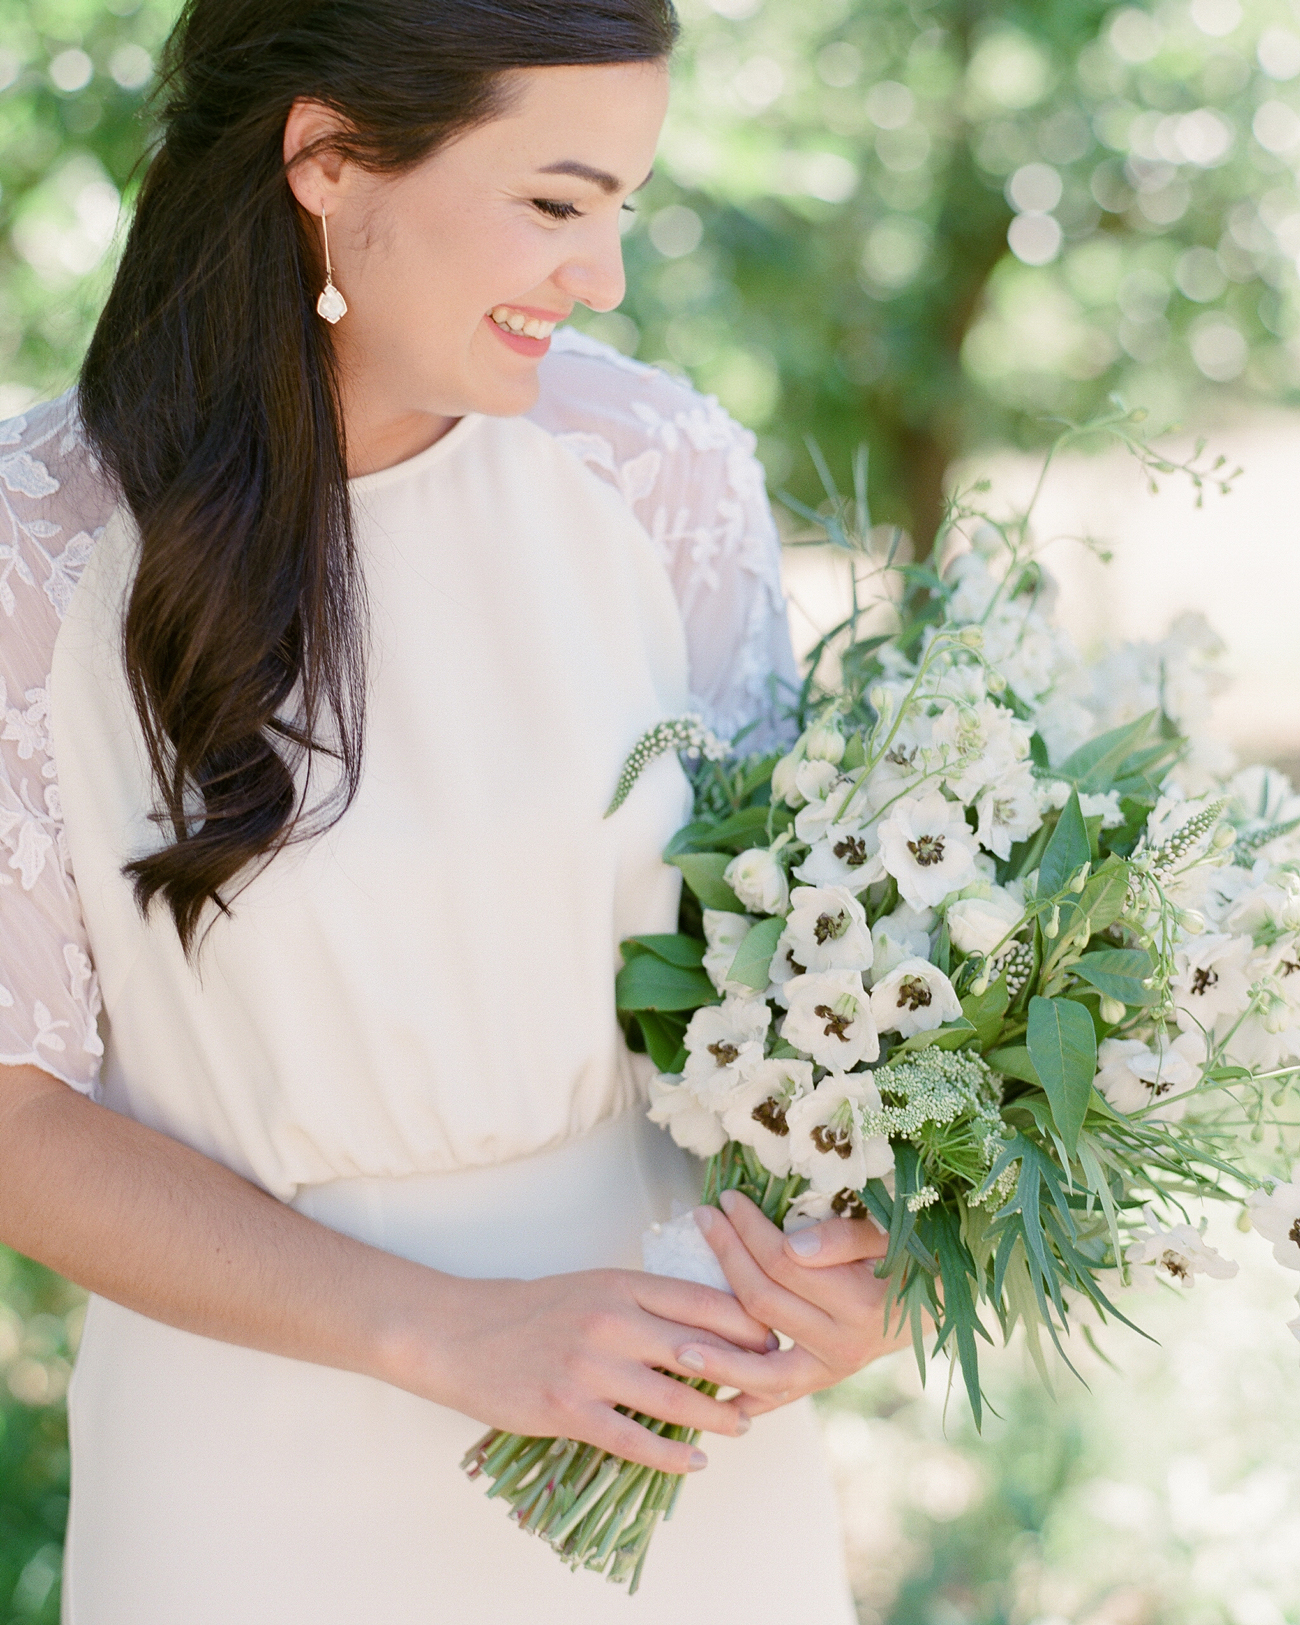 black and white flower long stemmed wedding bouquet with greenery